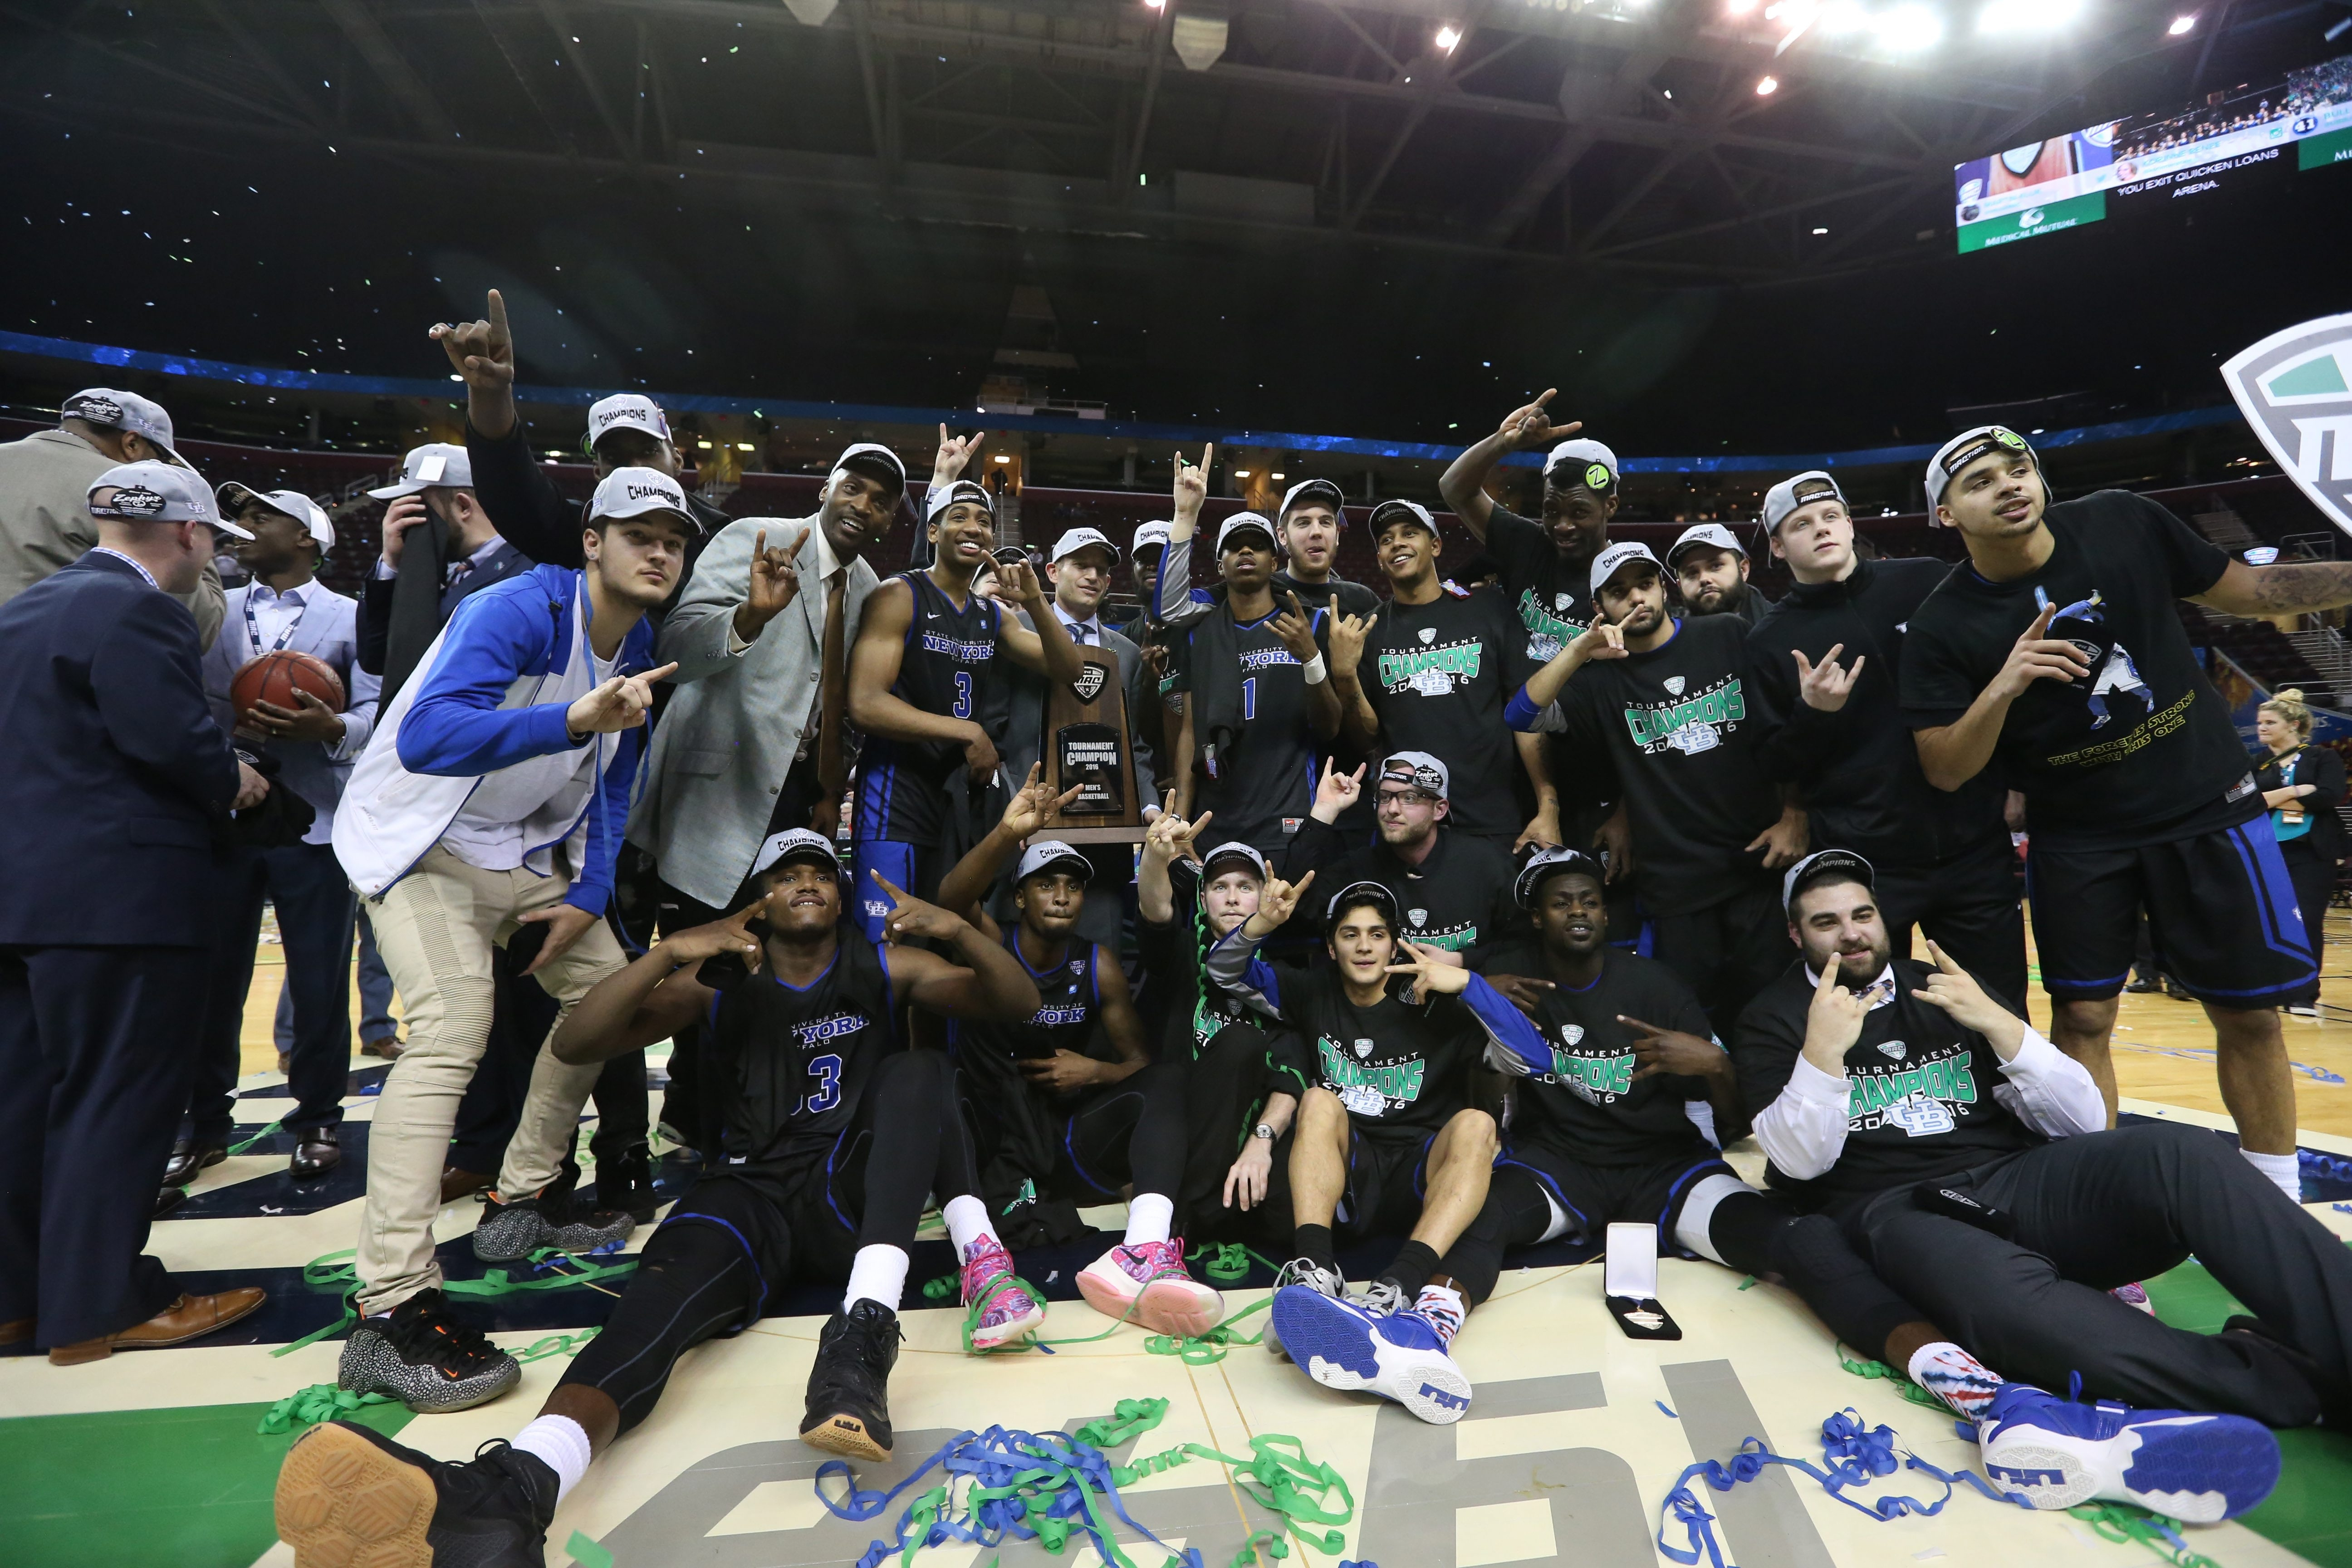 The Buffalo Bulls celebrate their MAC championship after a thrilling win over Akron on Saturday.